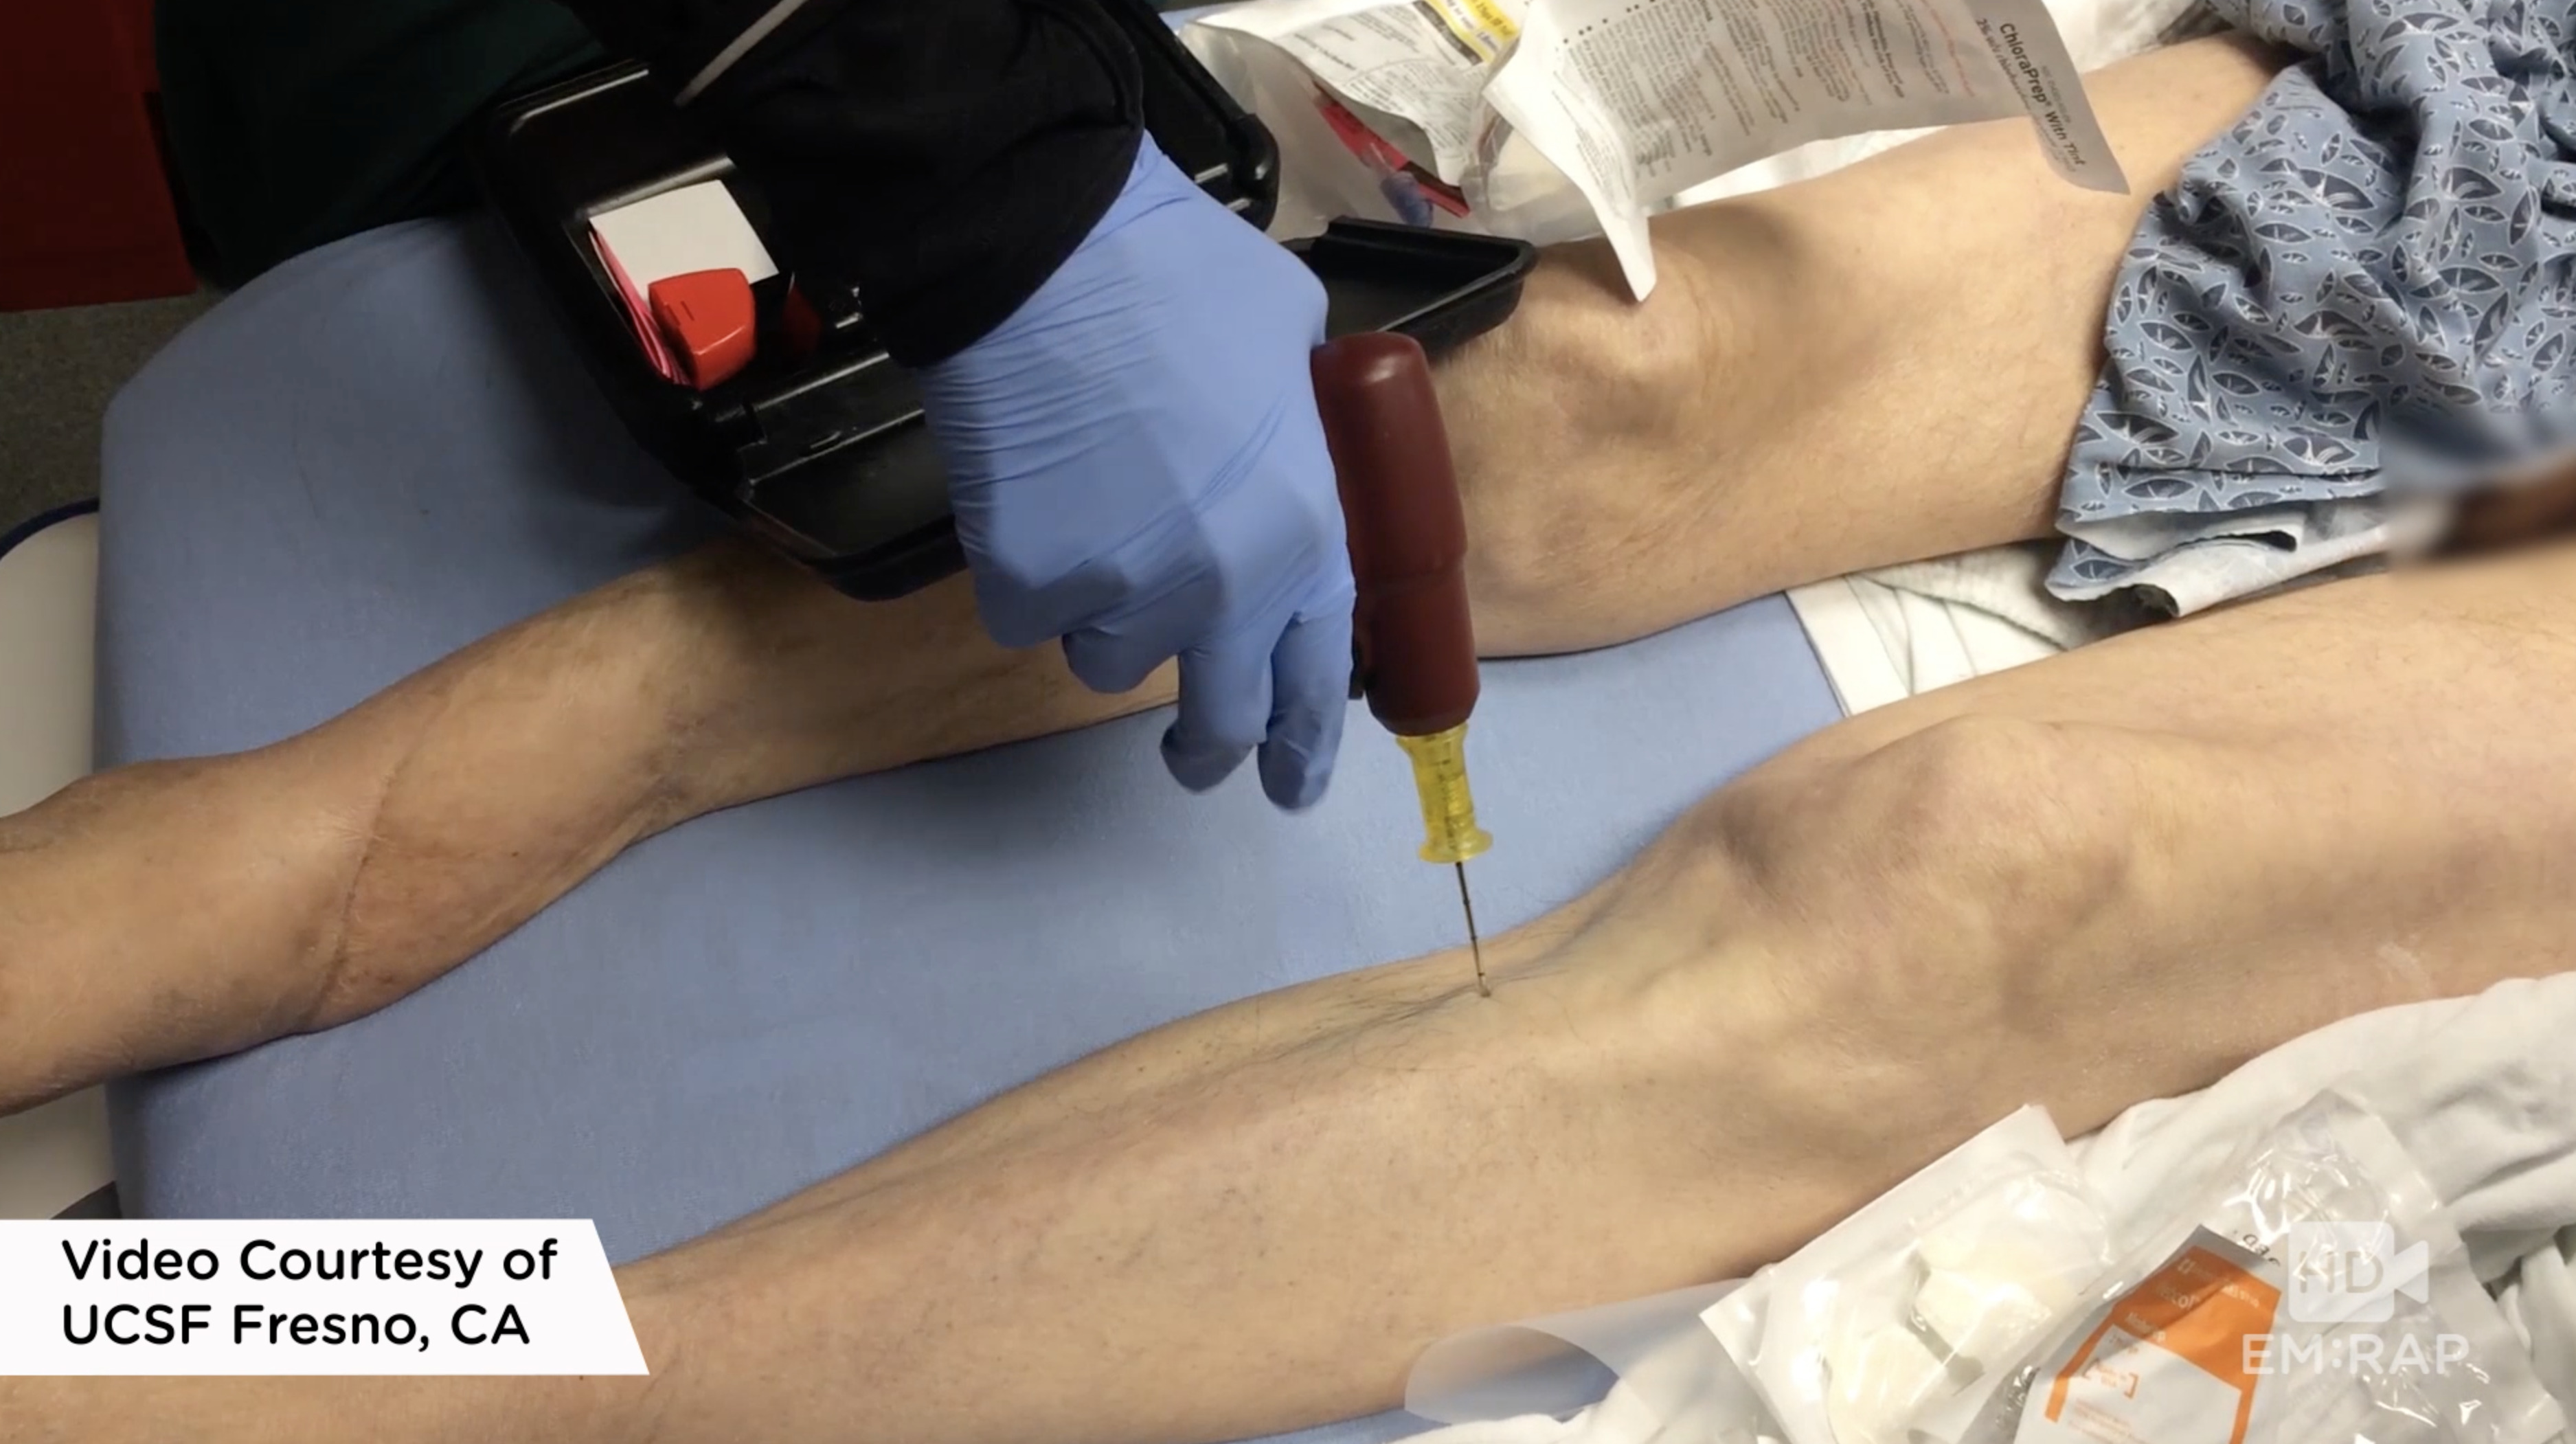 HD - Intraosseous Access with EZ-IO | EM:RAP